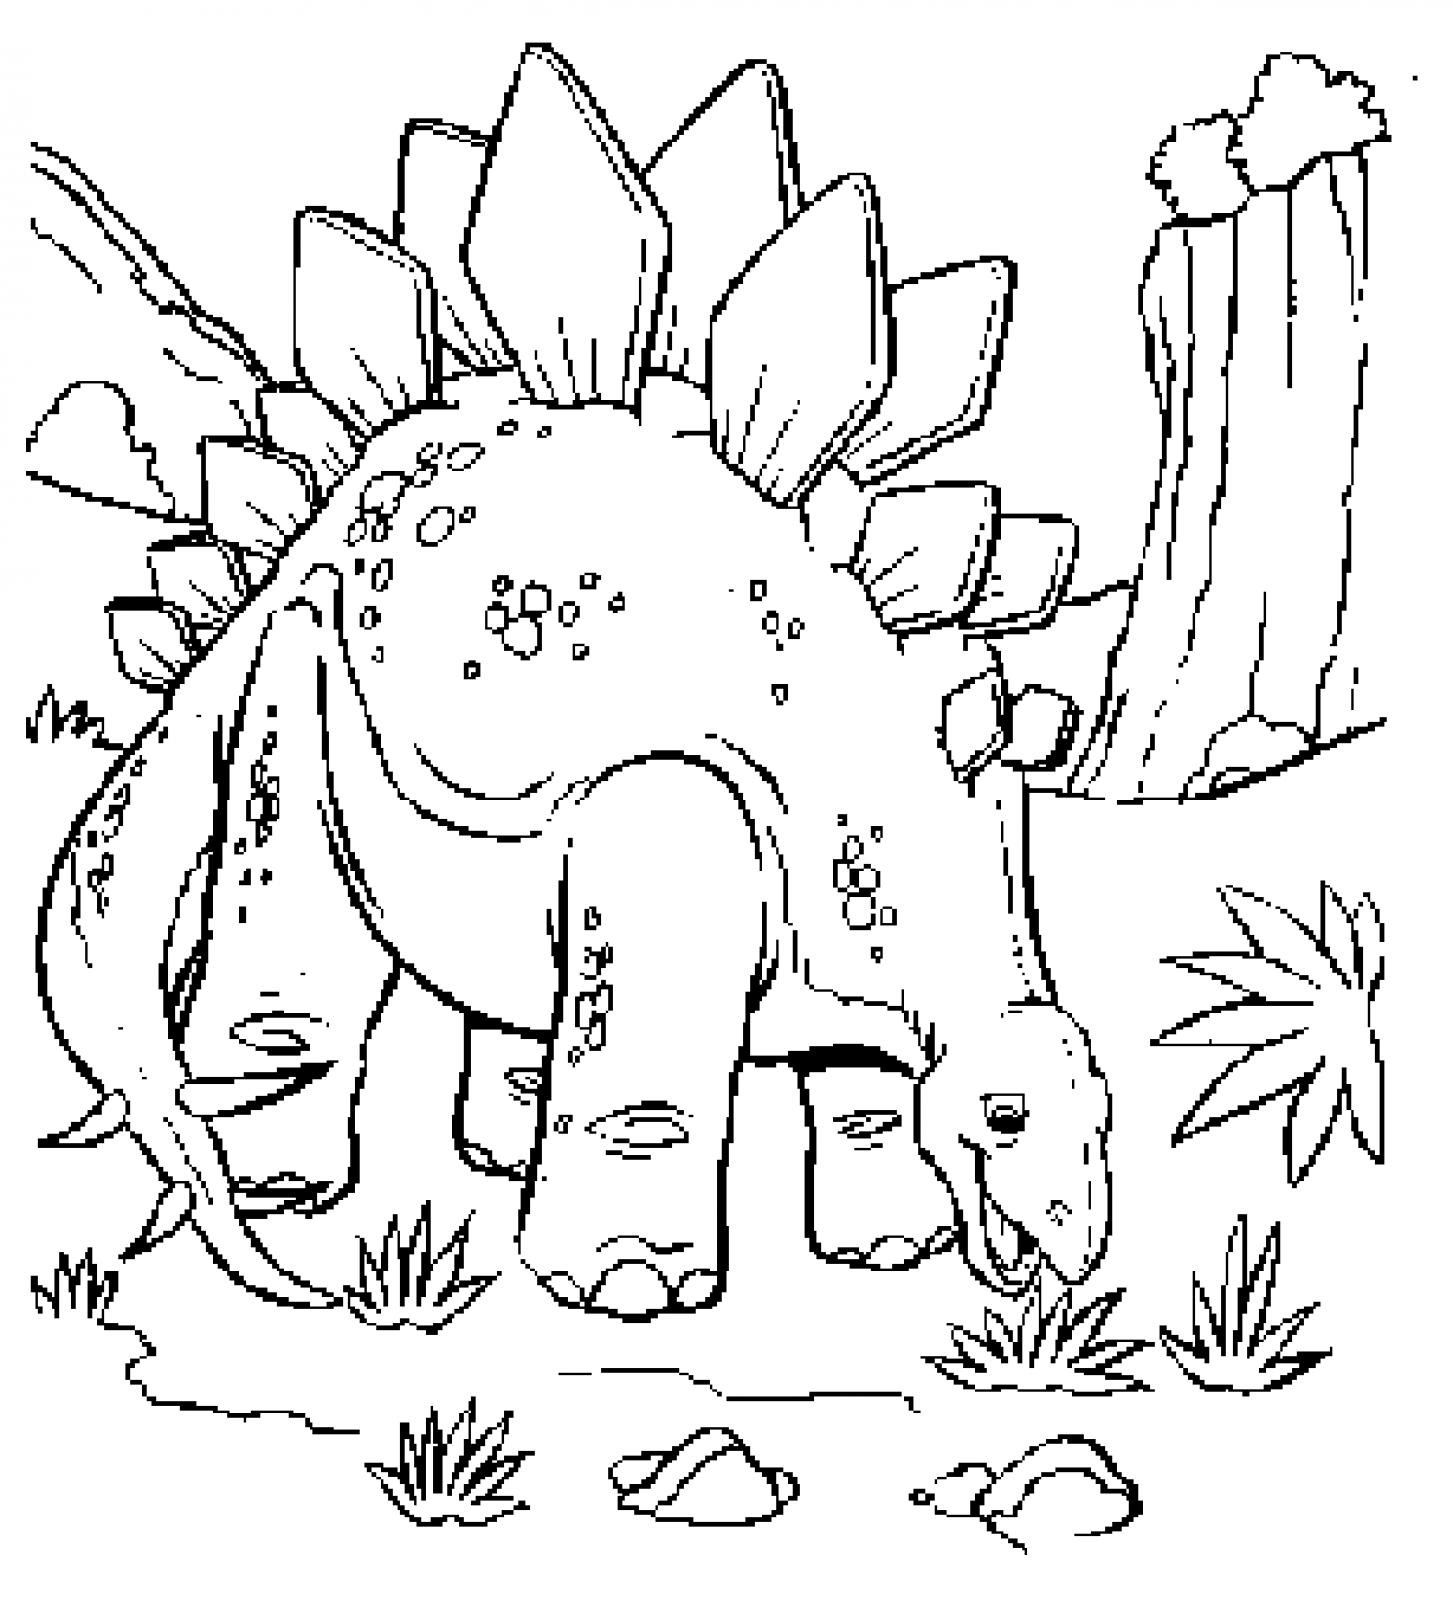 dinosaurs coloring pages, dinosaurs coloring pdf